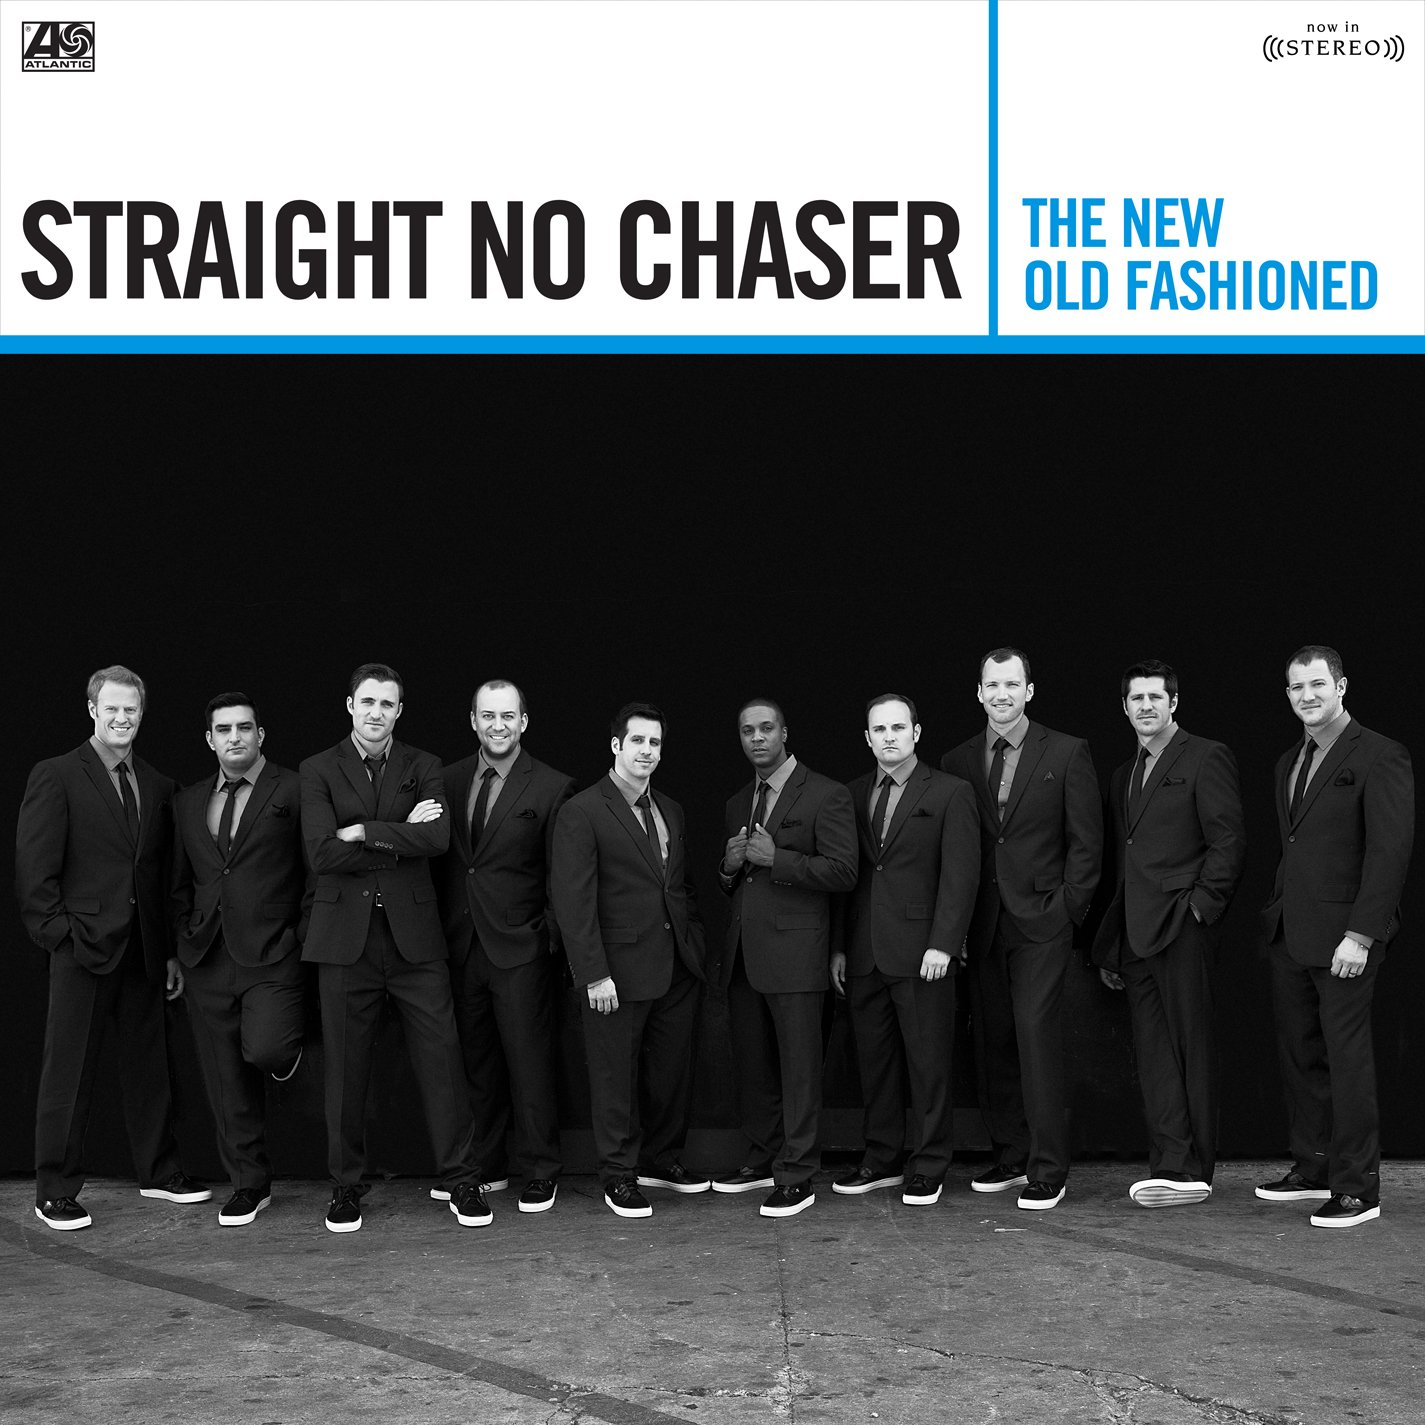 Straight No Chaser - The New Old Fashioned - Amazon.com Music